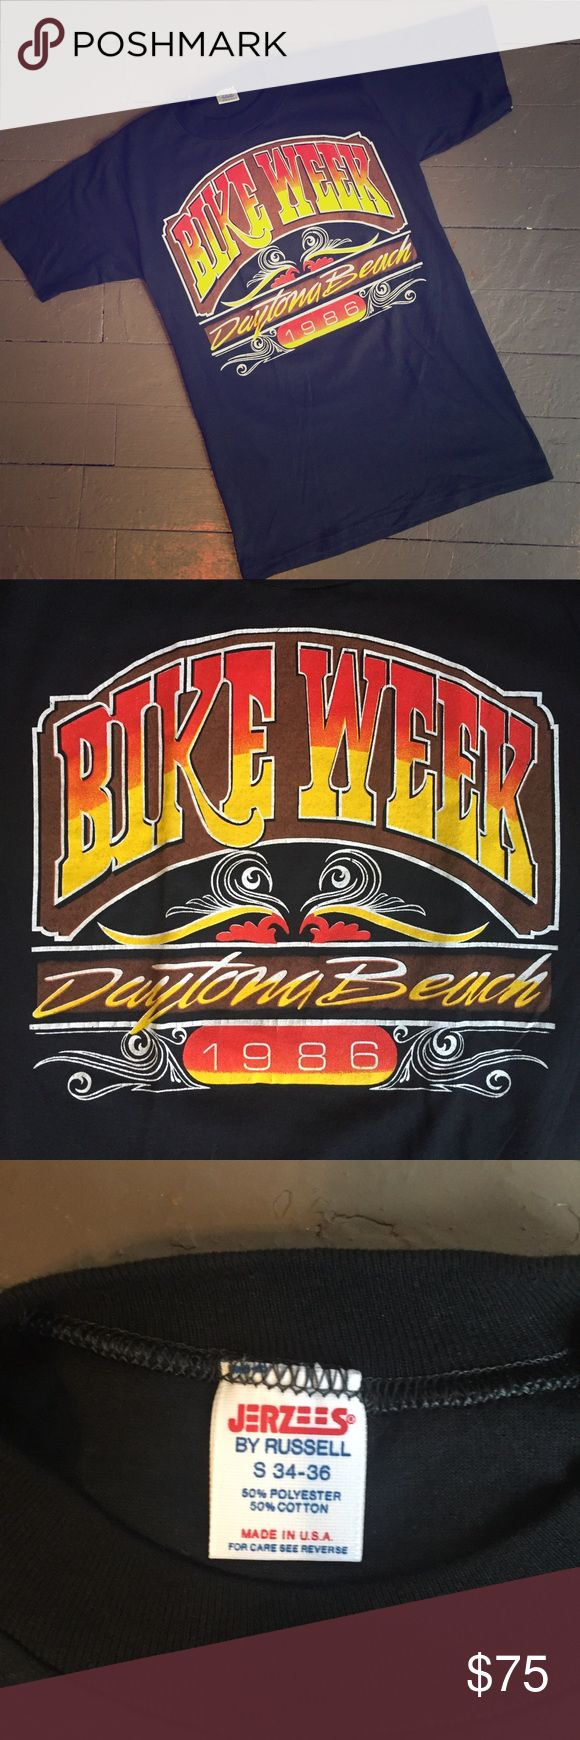 True Vintage Bike Week Daytona Beach t-shirt small 1986 Daytona Beach Bike Week Shirt. Harley-Davidson Dealer tee. Original Vintage, not a reproduction. Tight-fitting. Fits like a women's small. Excellent condition. Harley-Davidson Tops Tees - Short Sleeve